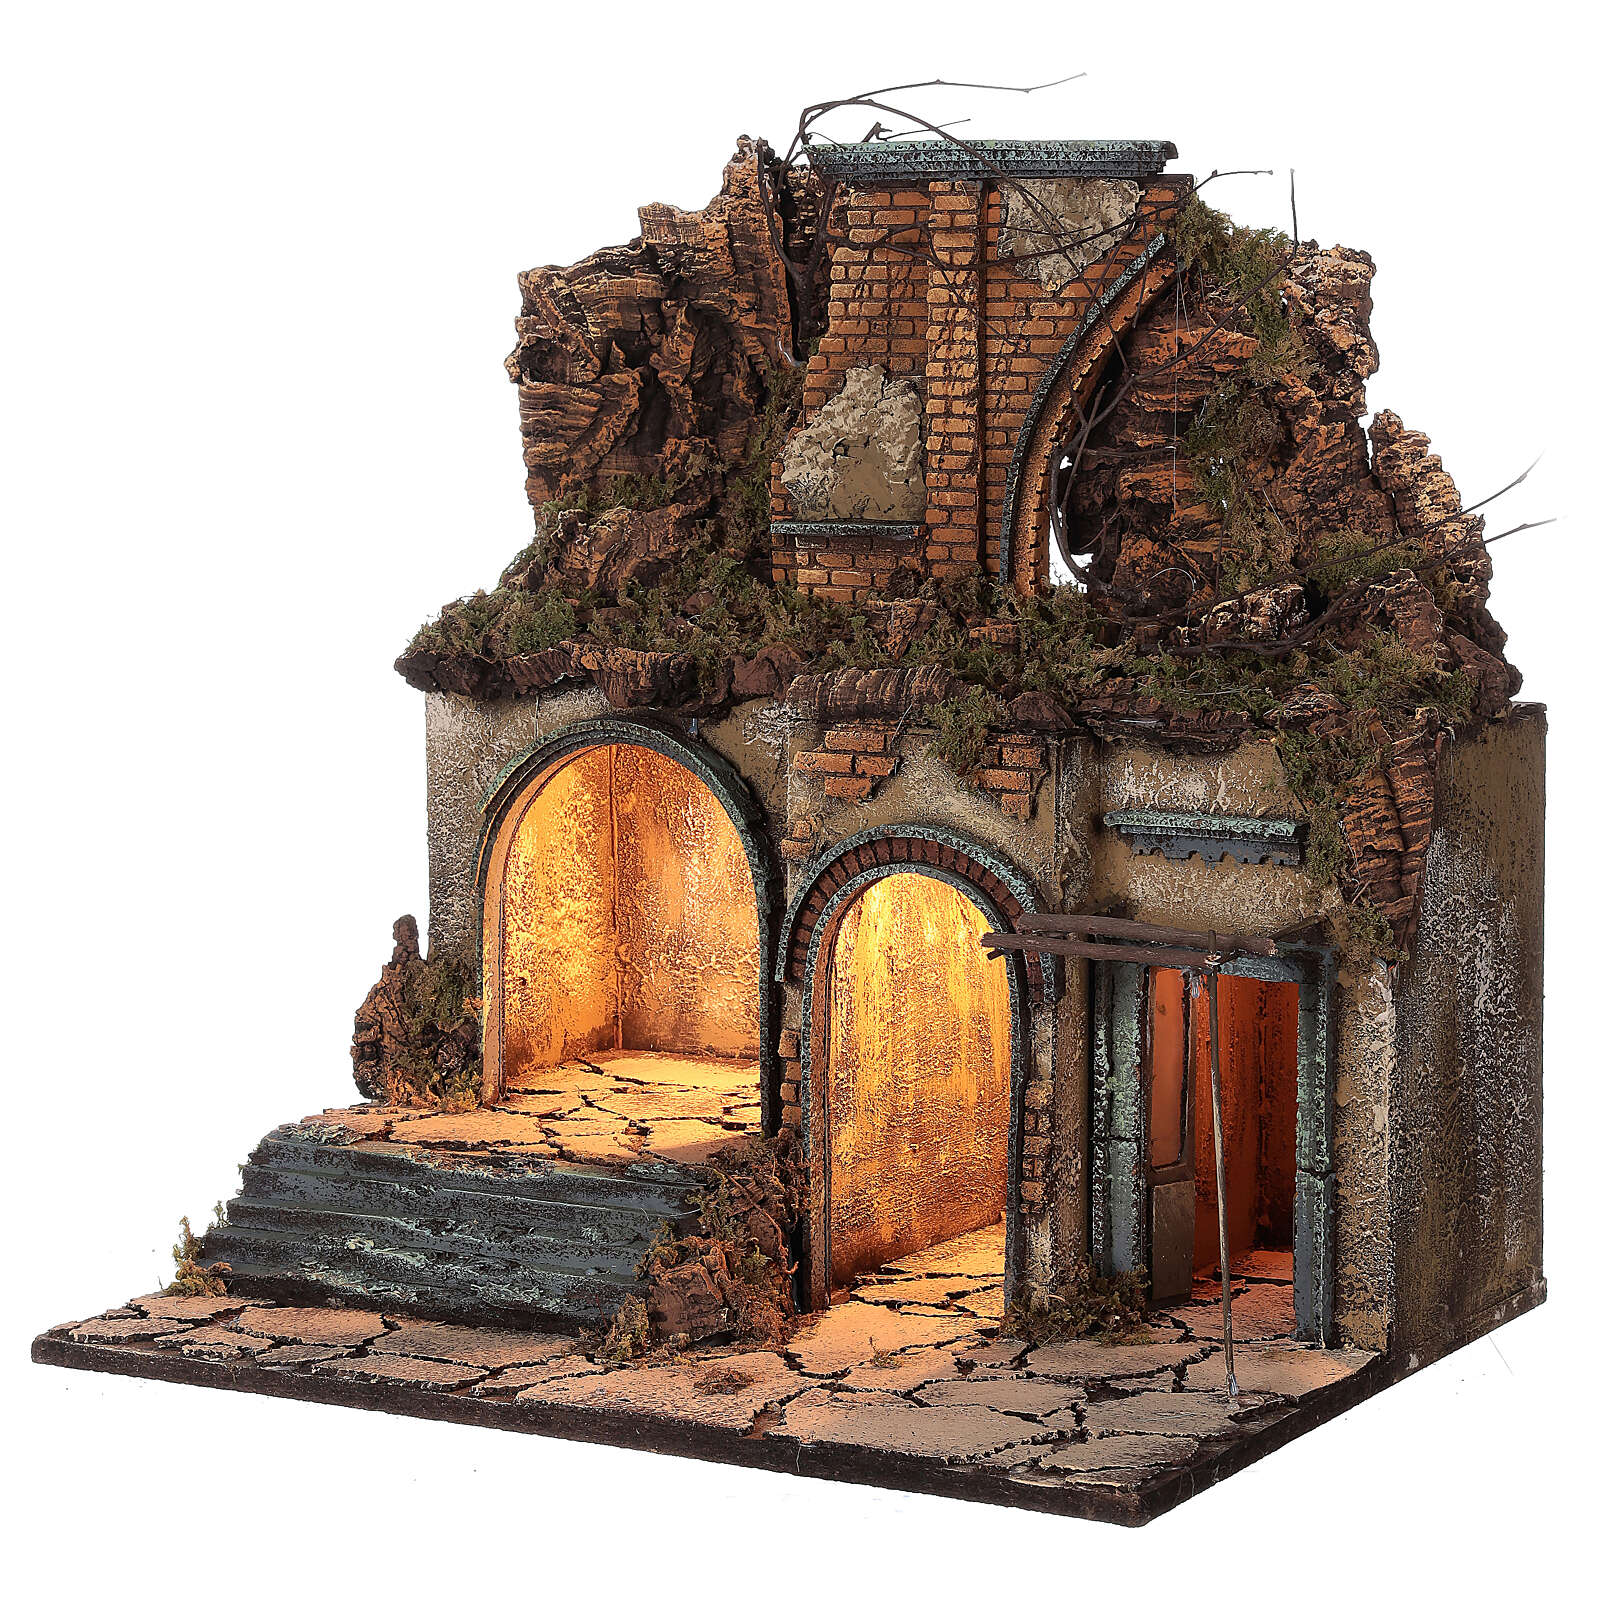 Neapolitan Nativity Scene village ruined arch lights 60x50x40 cm for figurines of 10 cm average height 4